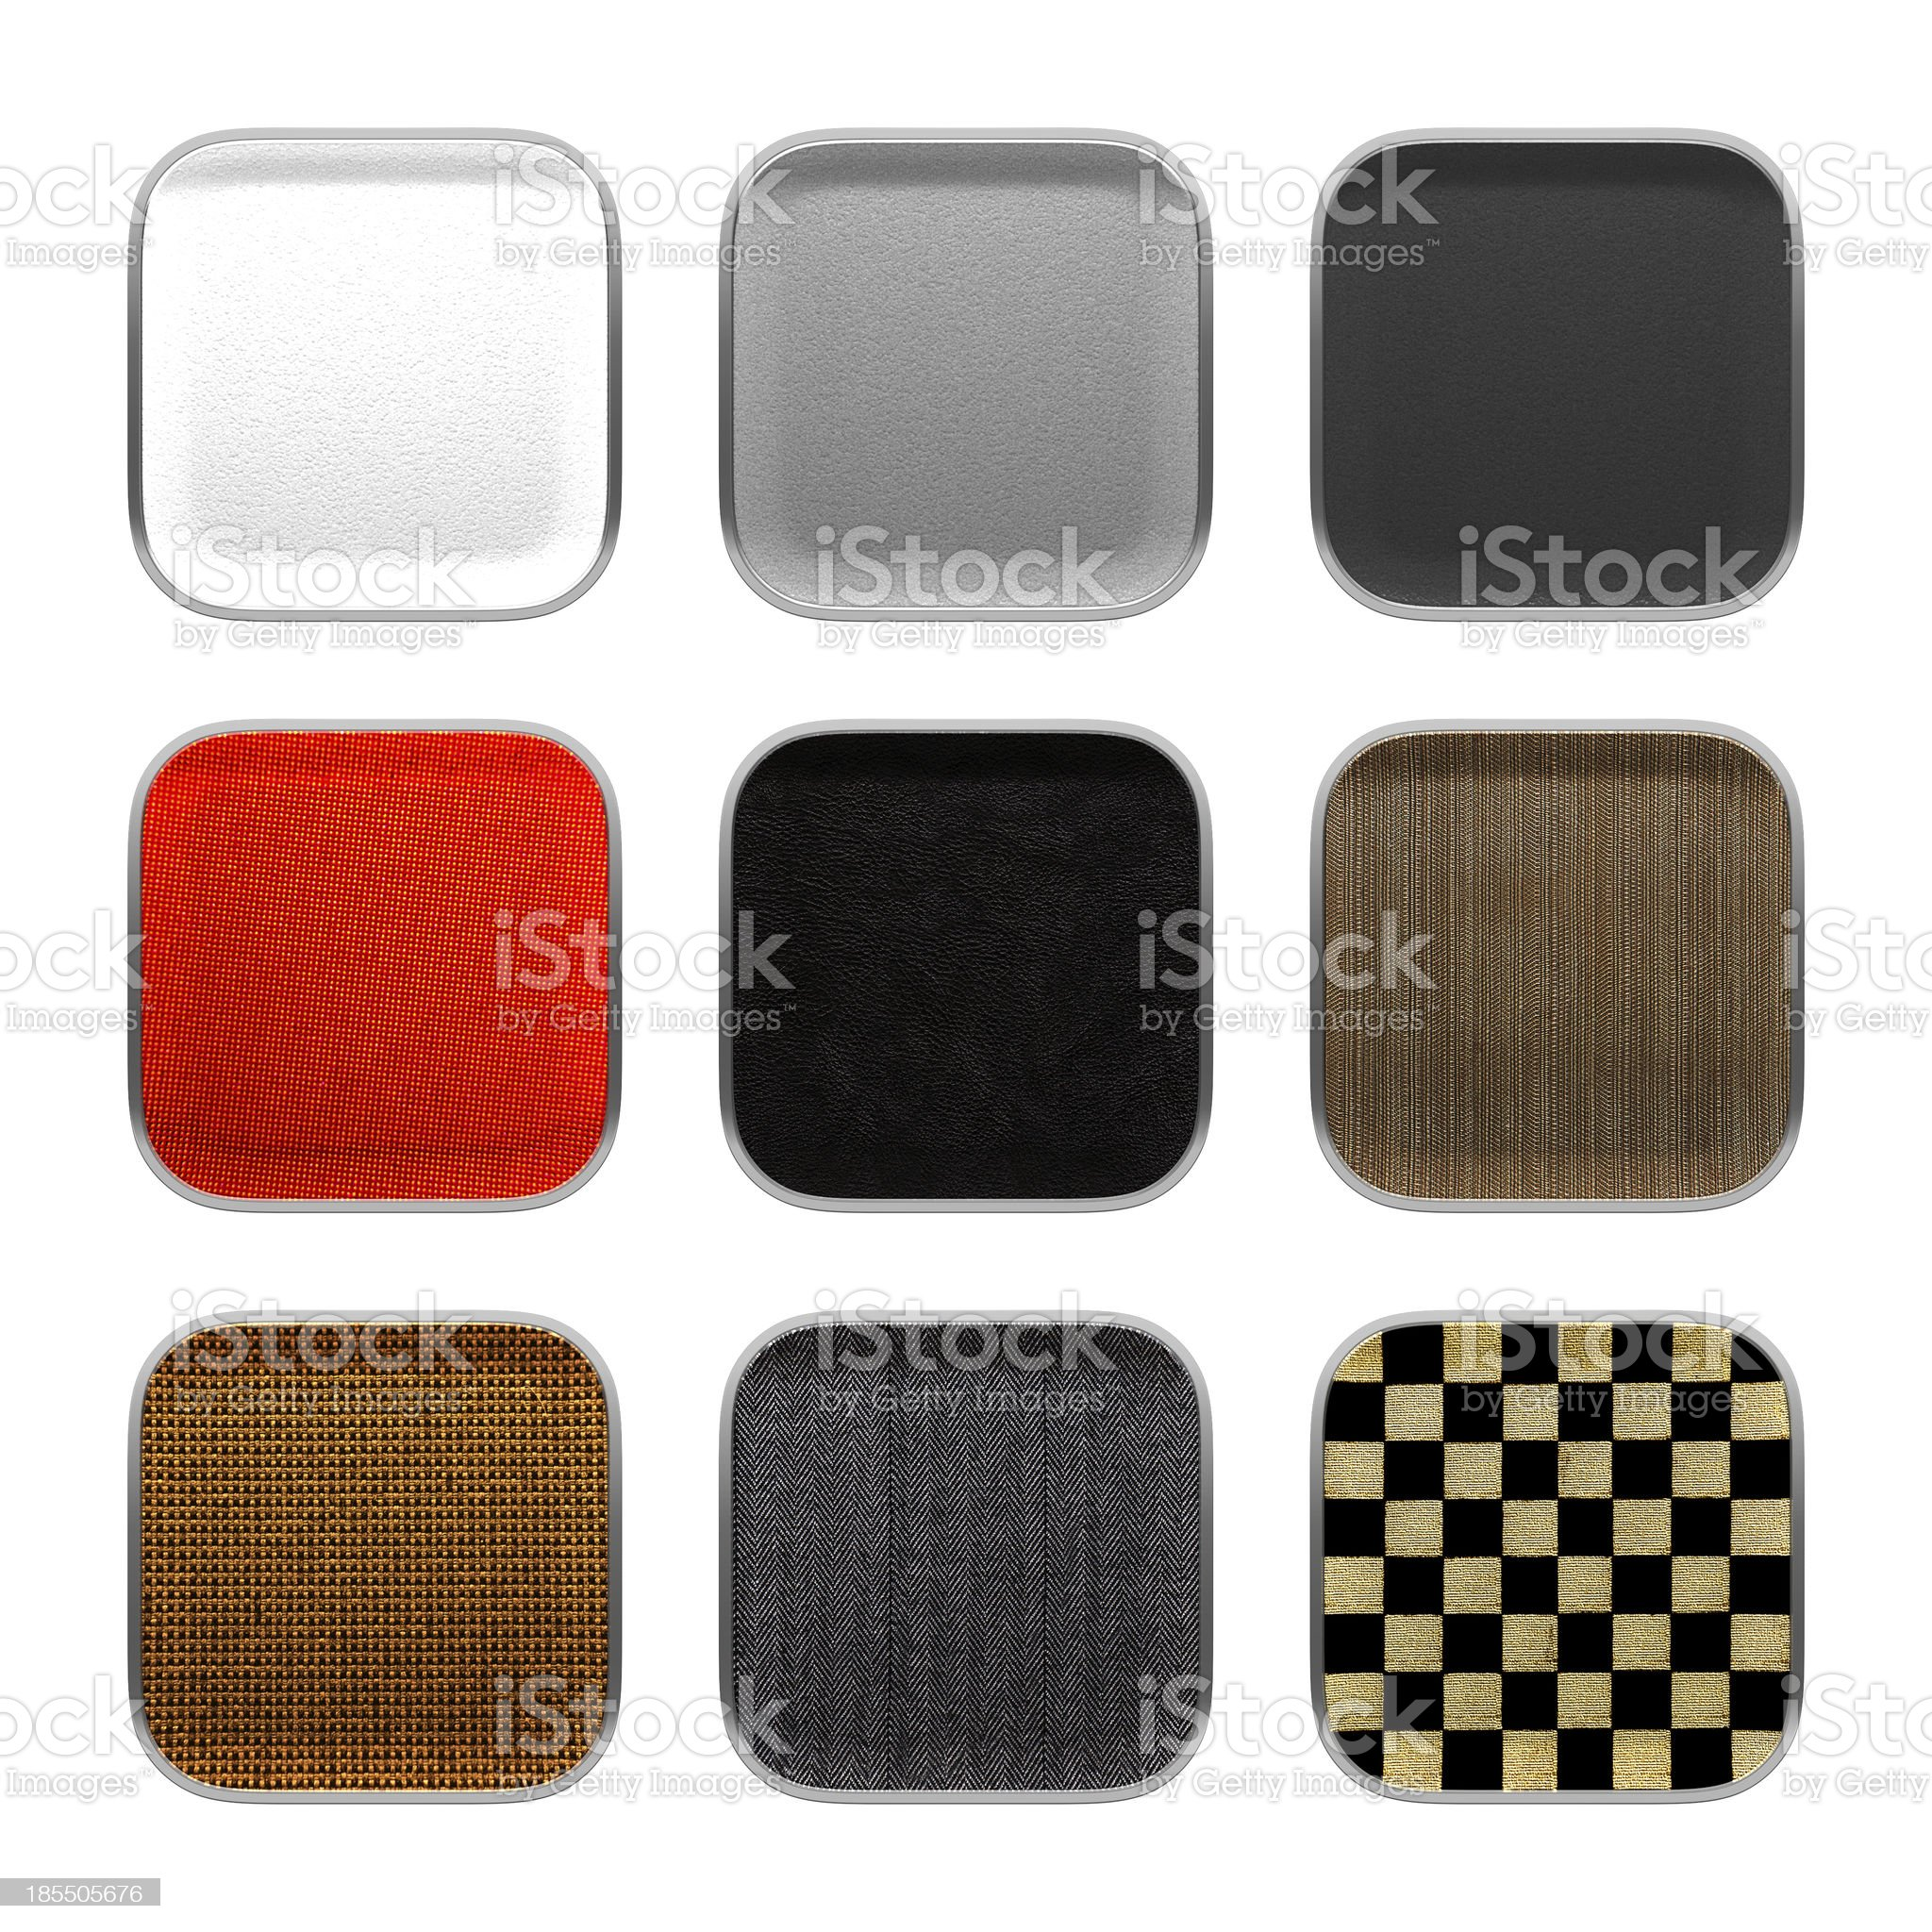 Blank app icon fabric material theme texture with metalic frame. royalty-free stock photo